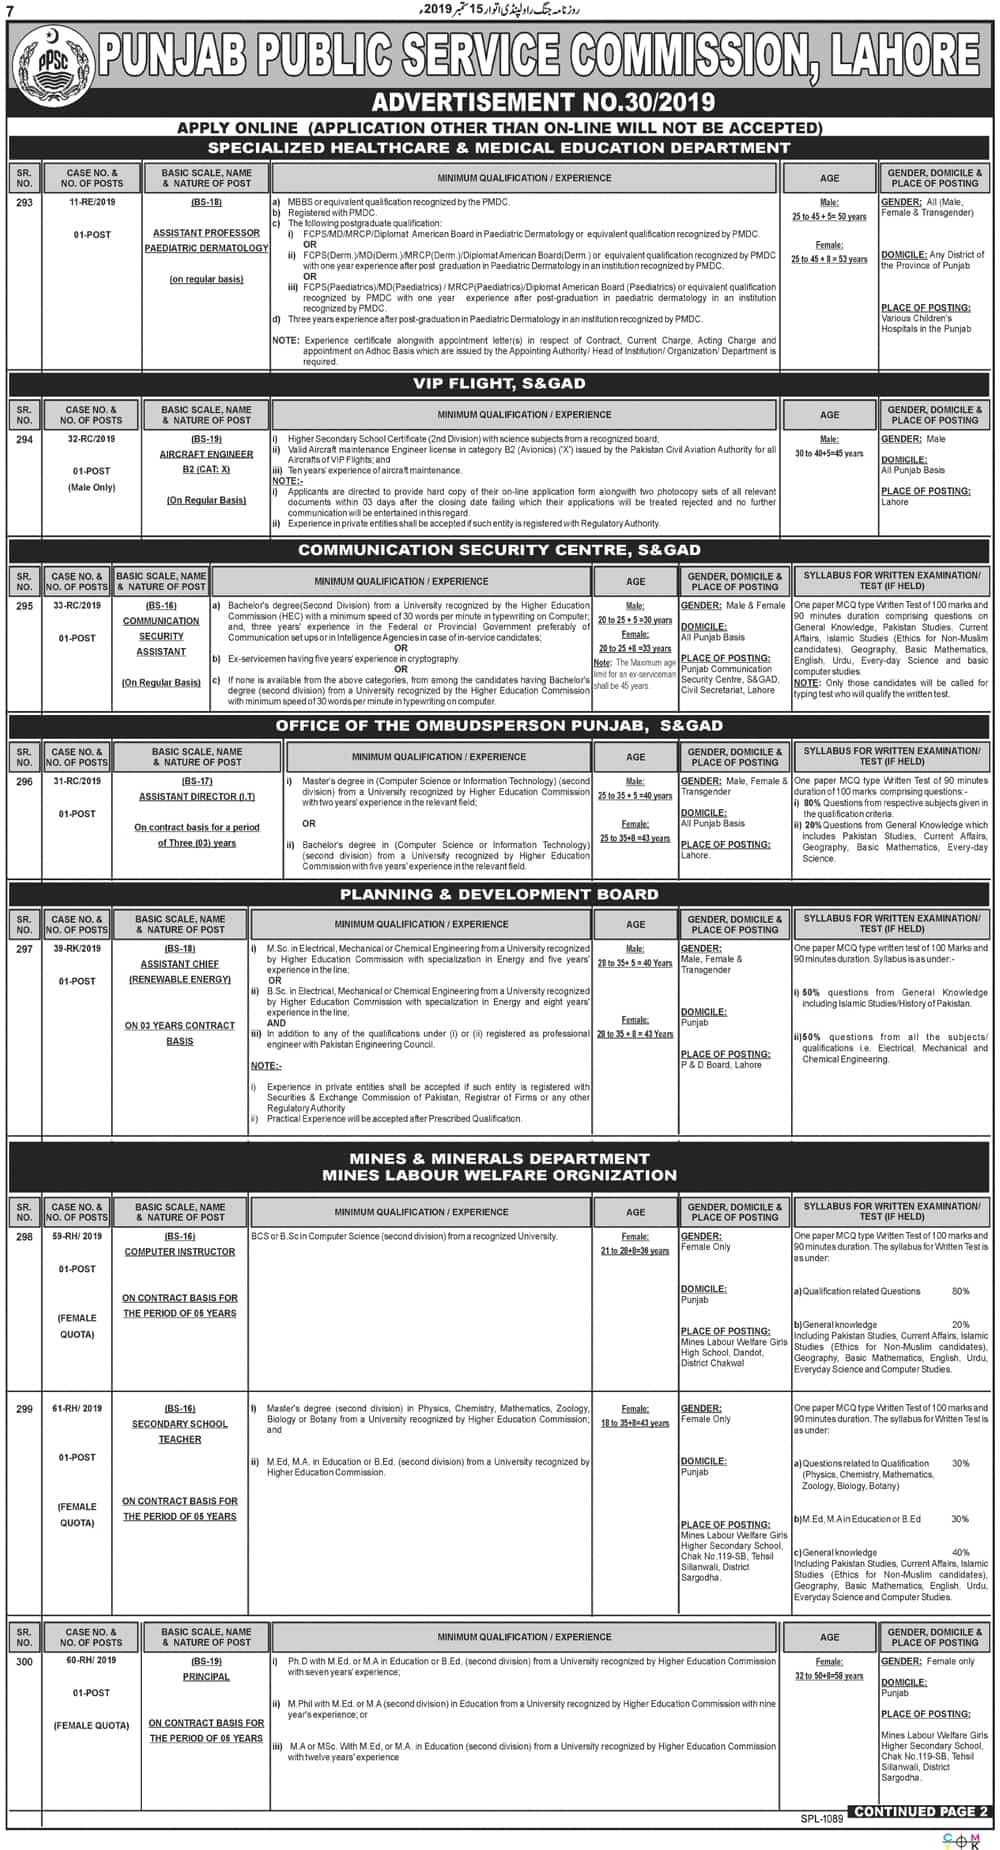 PPSC Latest Jobs Advertisement No 30 Job advertisement